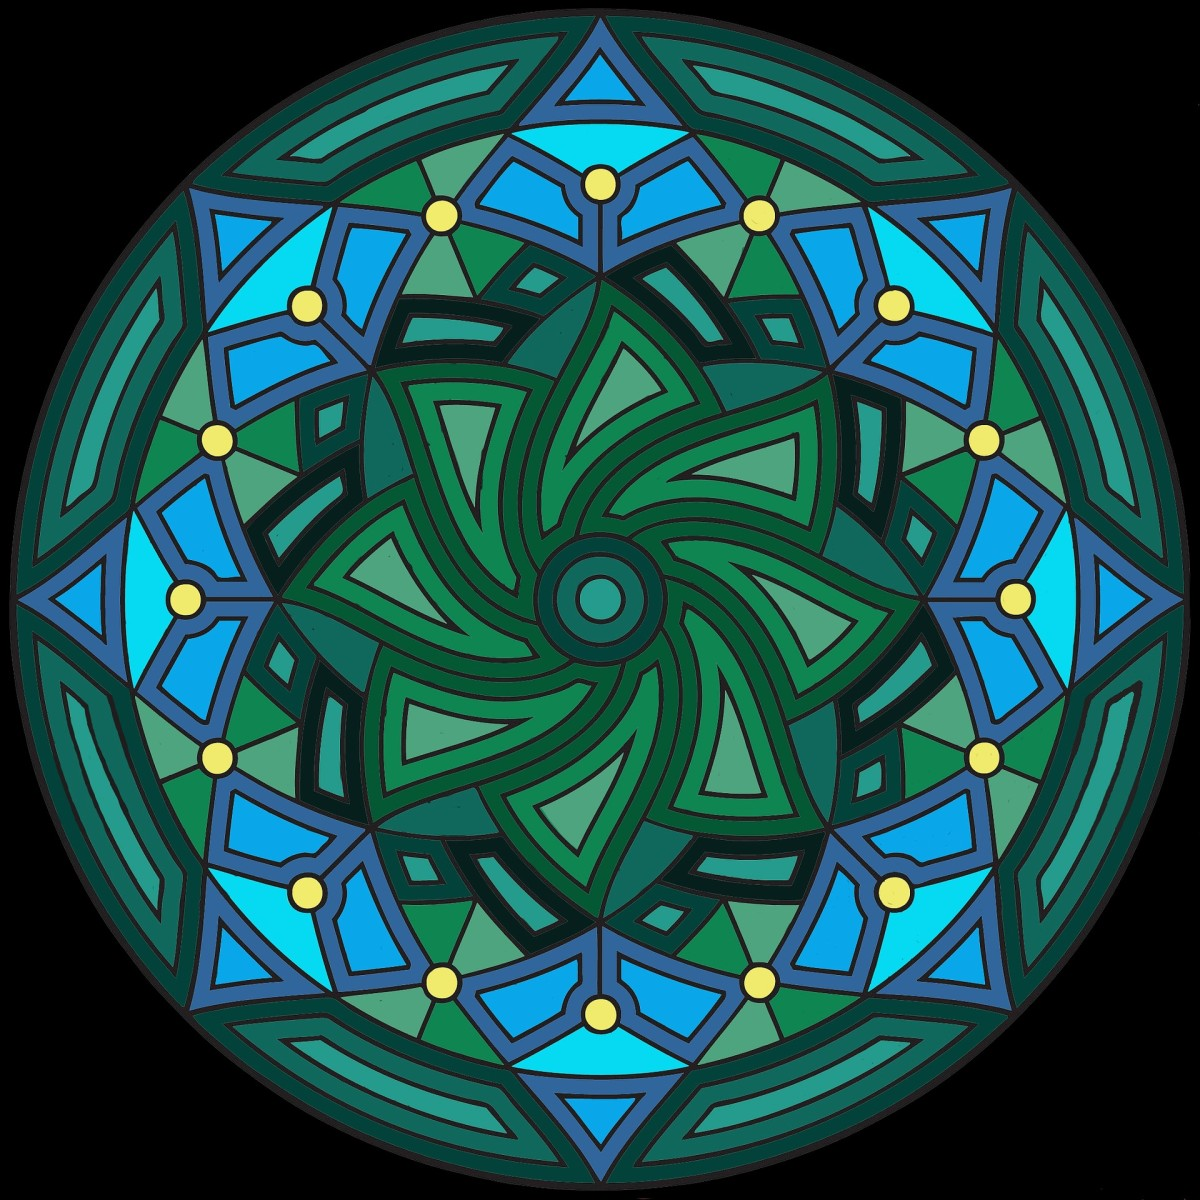 A mandala colored in shades of contrasting and complimentary greens and blues with yellow accents.